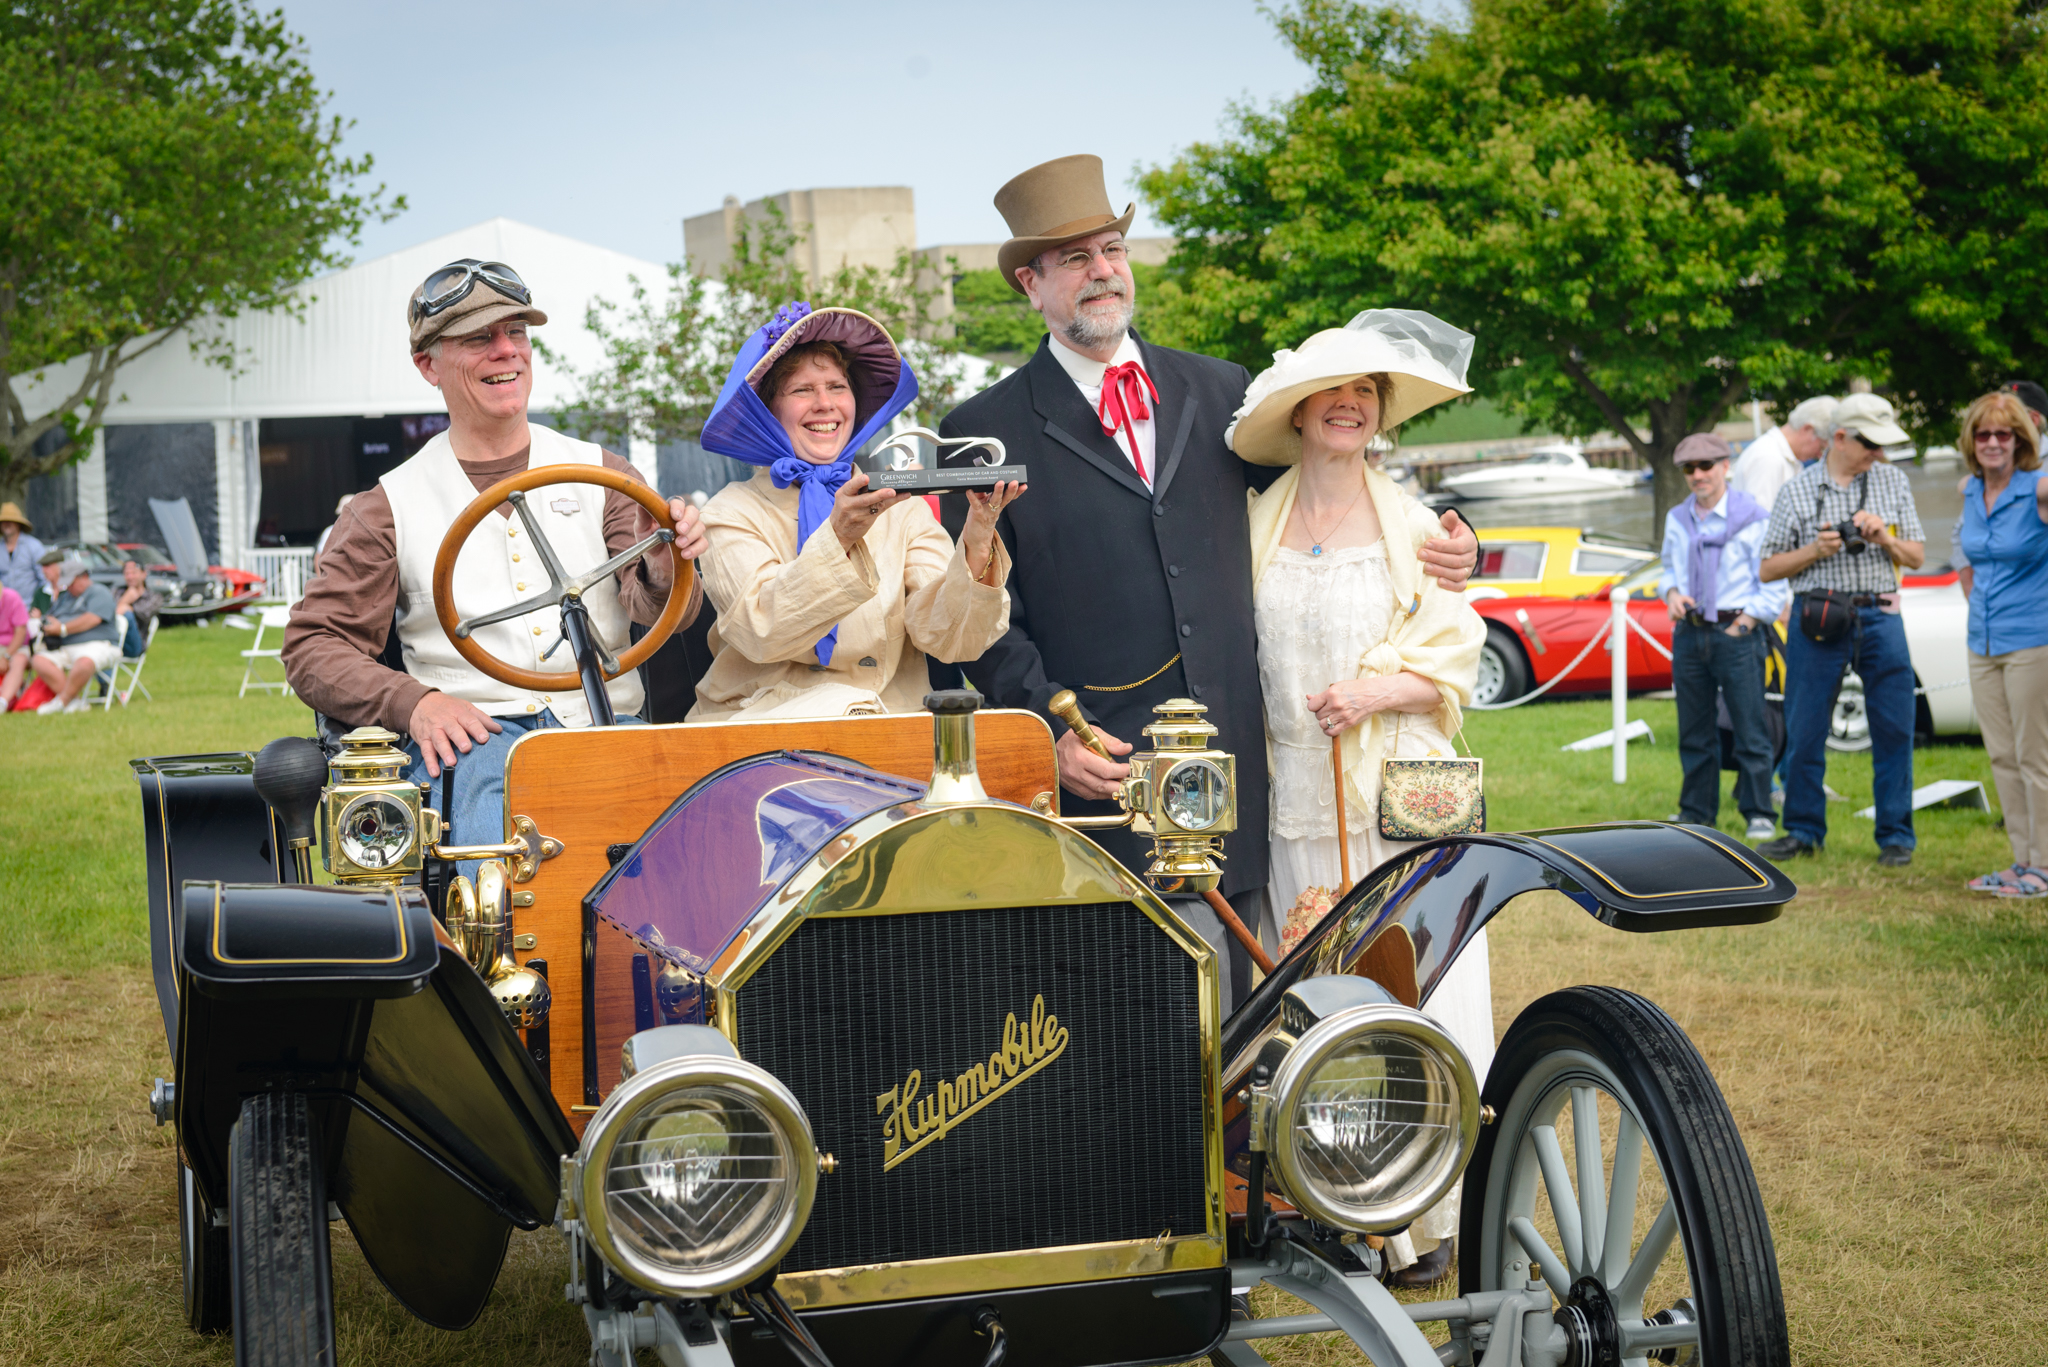 Greenwich concours costume